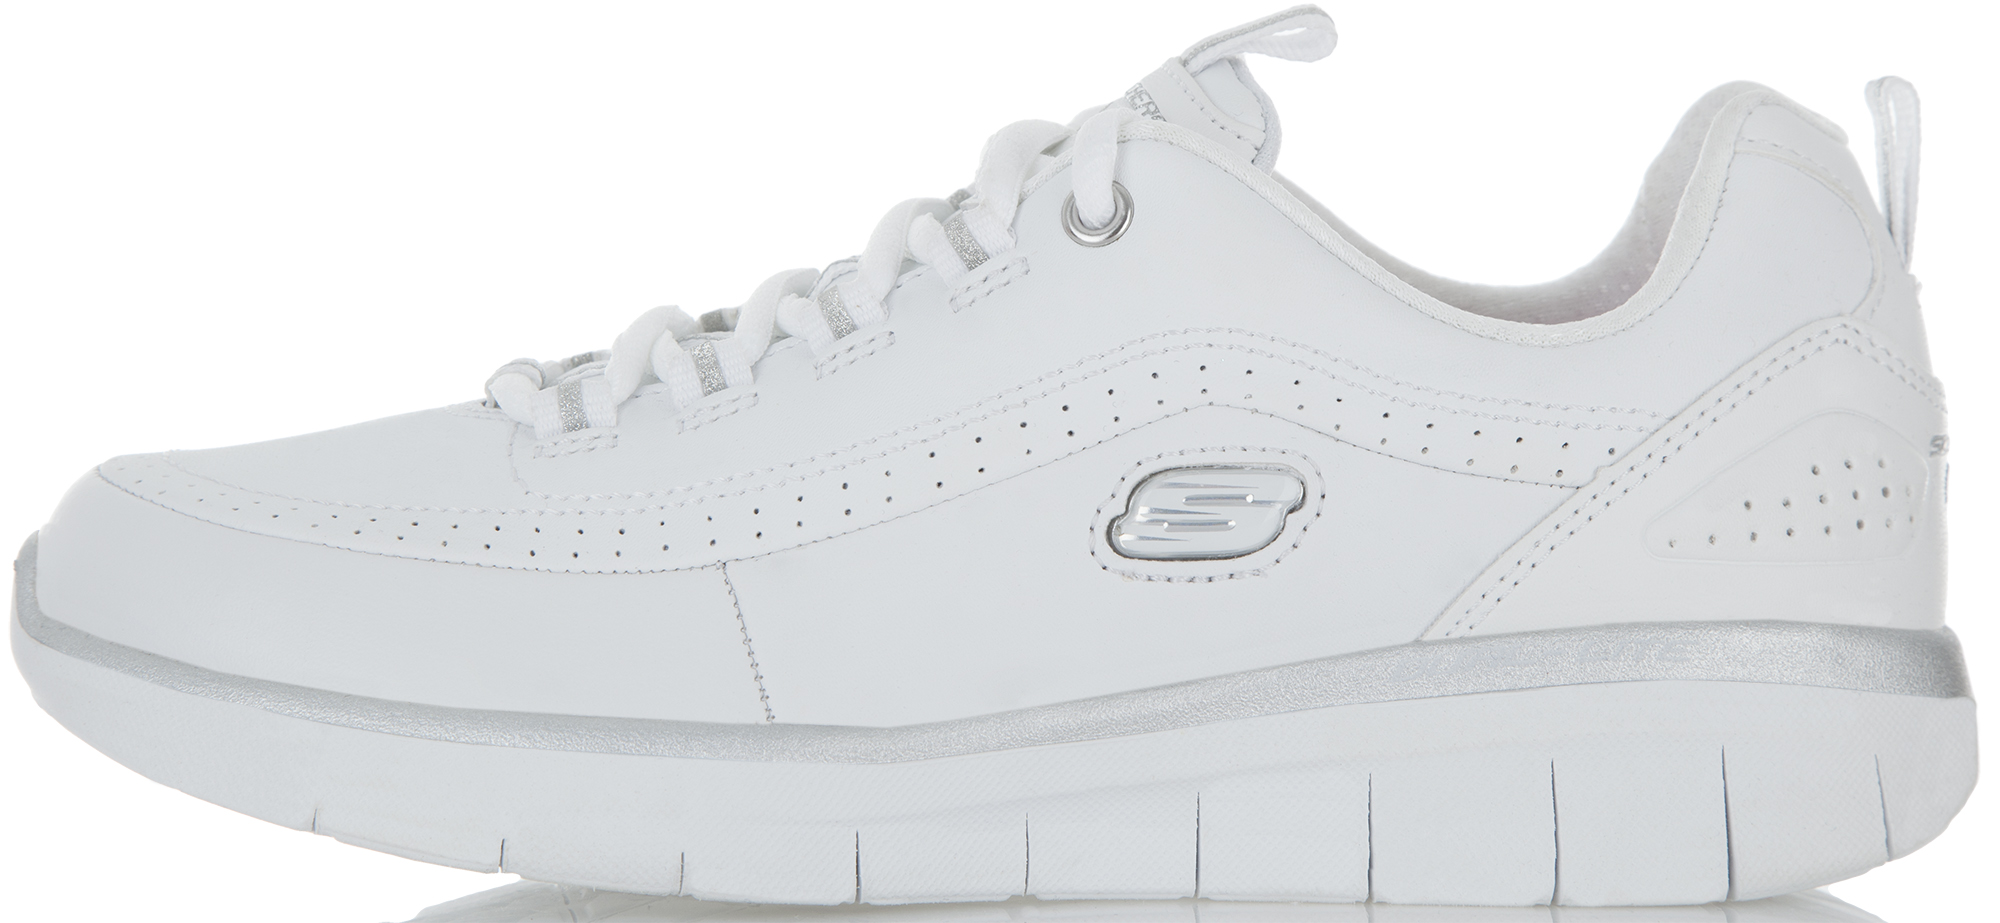 Skechers Кроссовки женские Skechers Synergy 2.0 synergy trading company limited